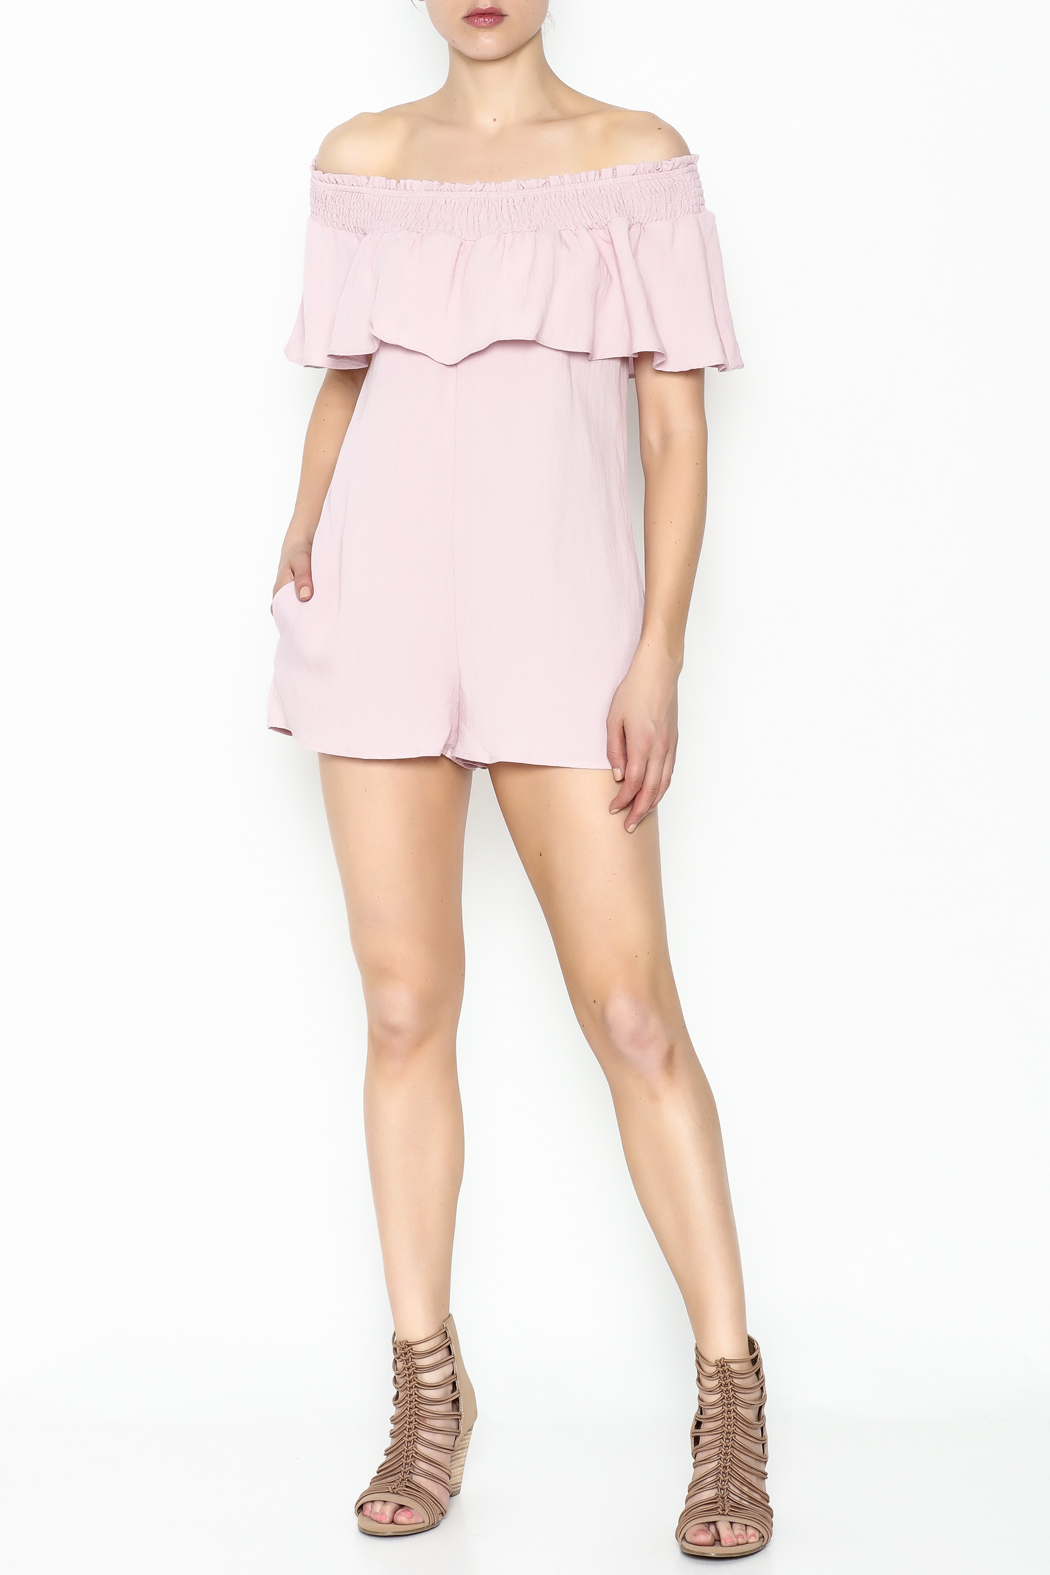 Cotton Candy LA Off The Shoudler Romper - Side Cropped Image